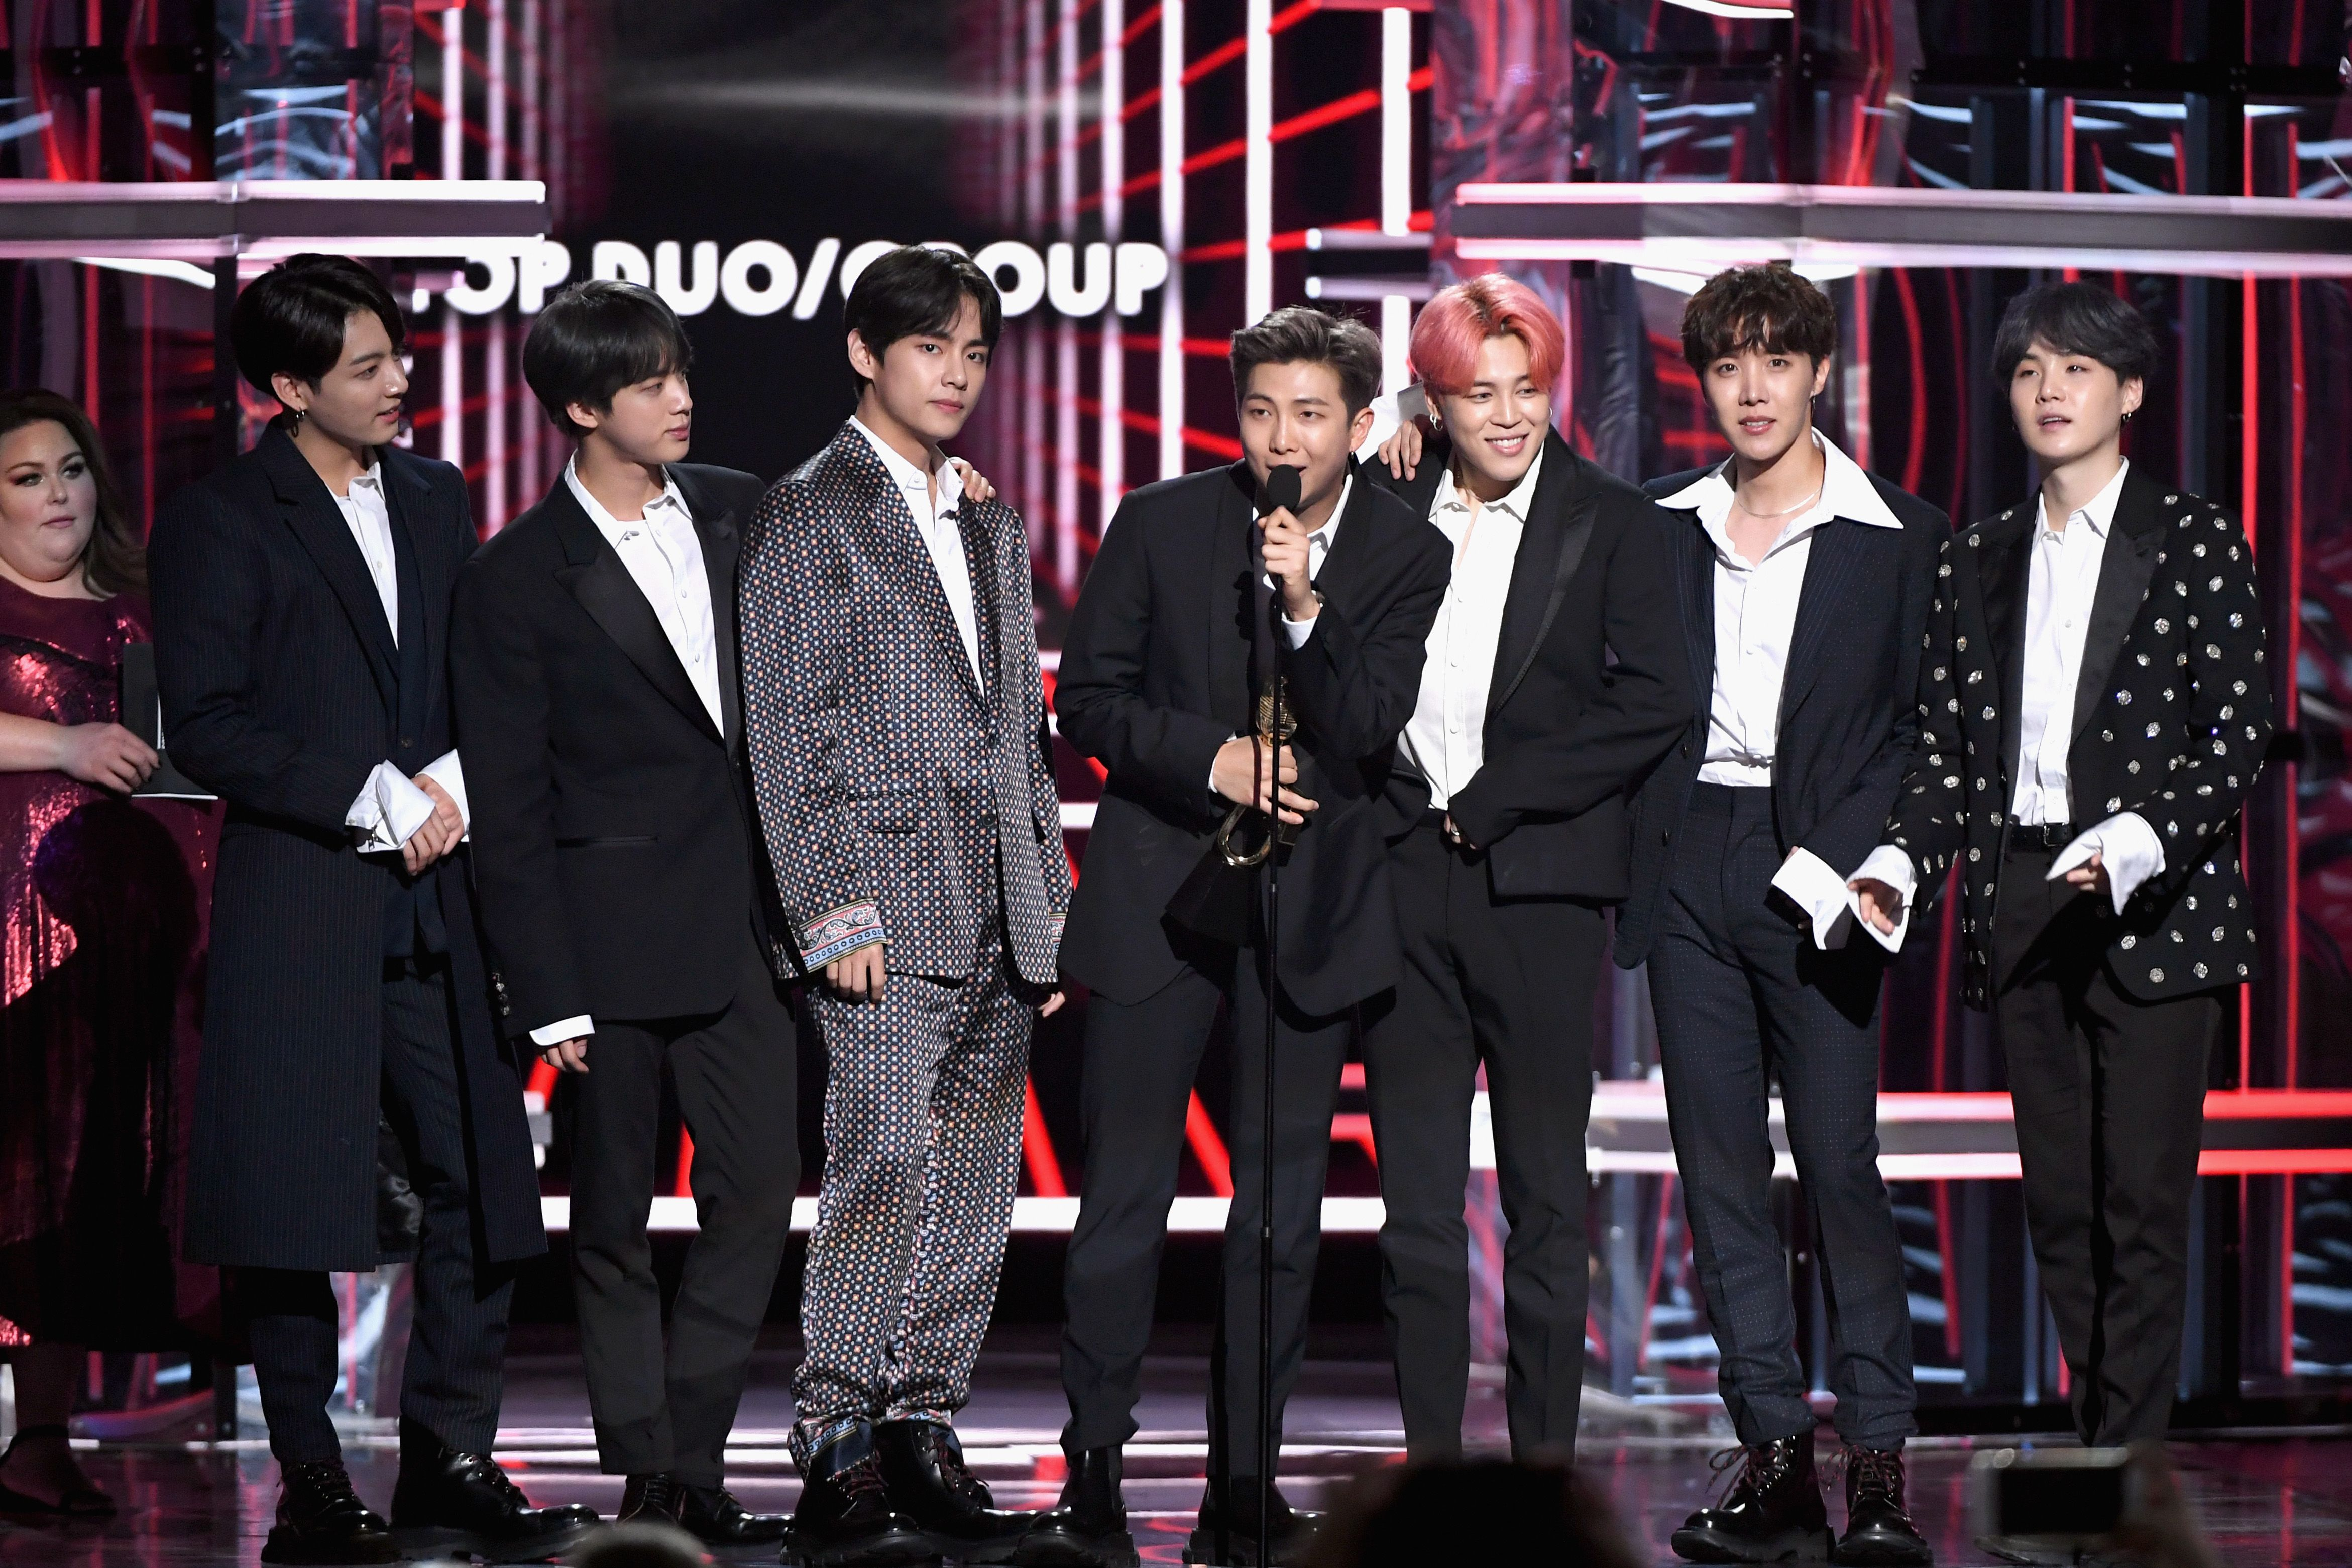 See RM From BTS's Full Acceptance Speech Transcript for